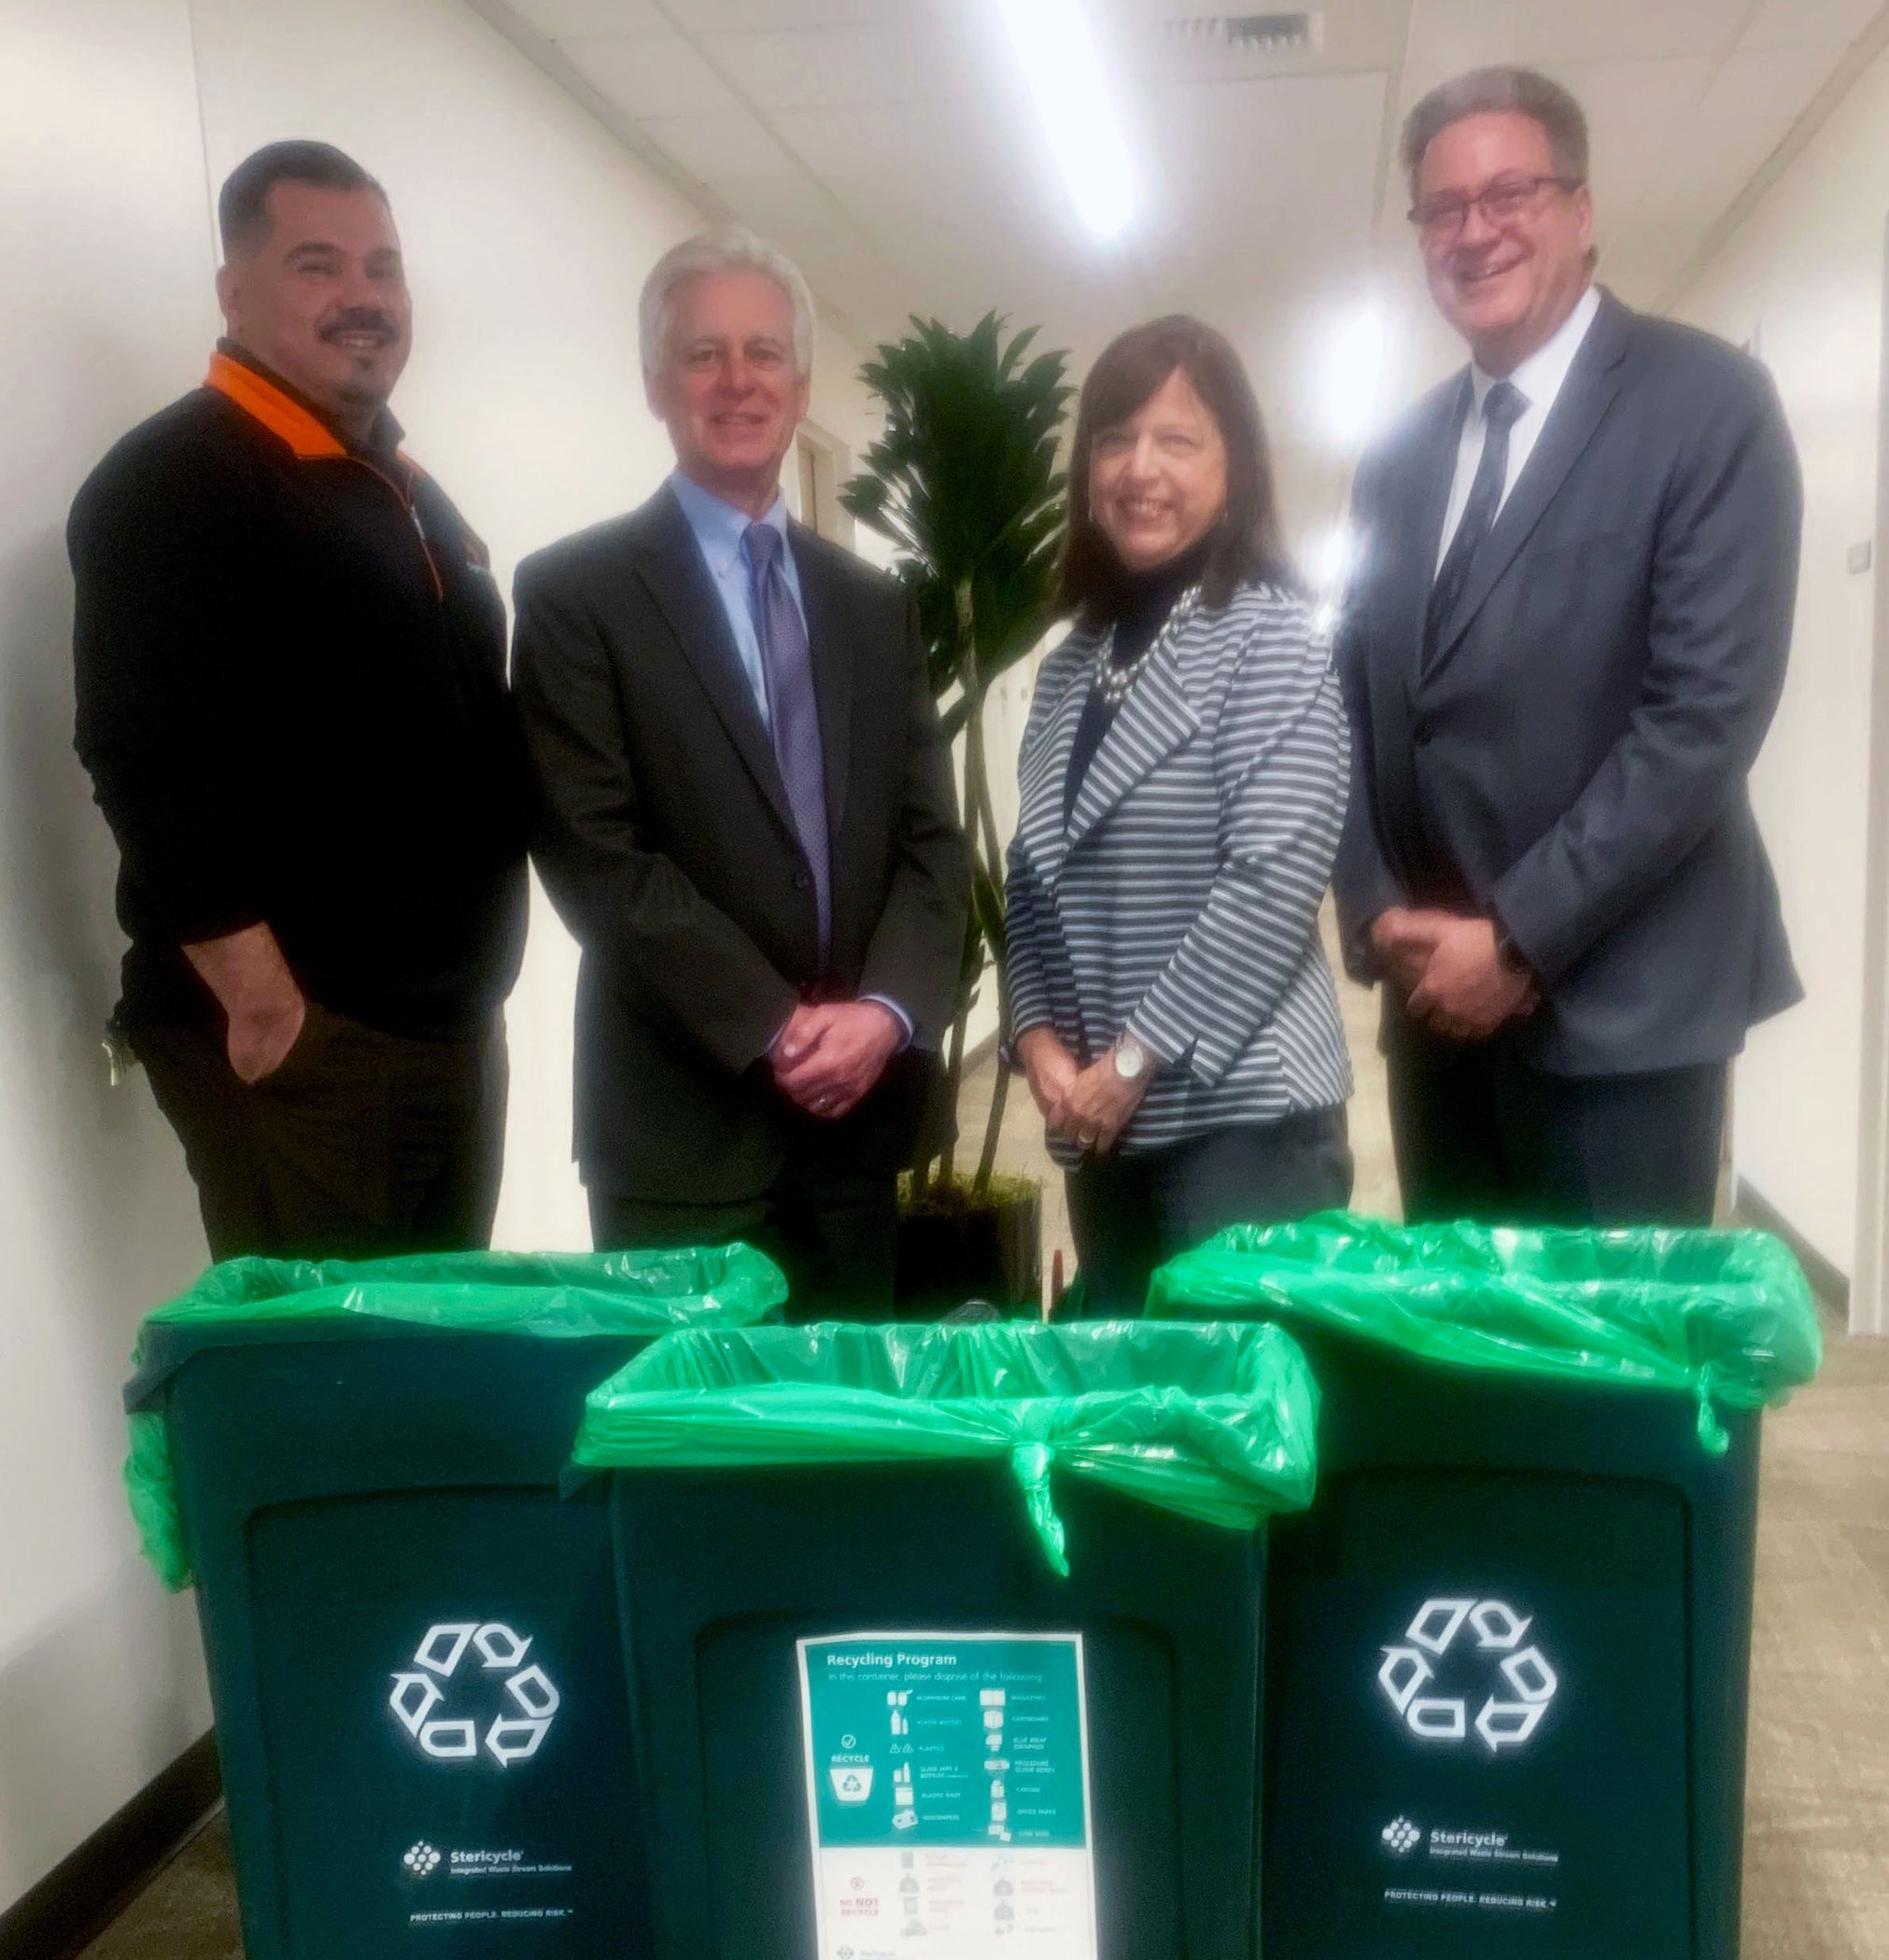 , St. Bernardine Medical Center honored for environmental sustainability by Practice Greenhealth, The Circular Economy